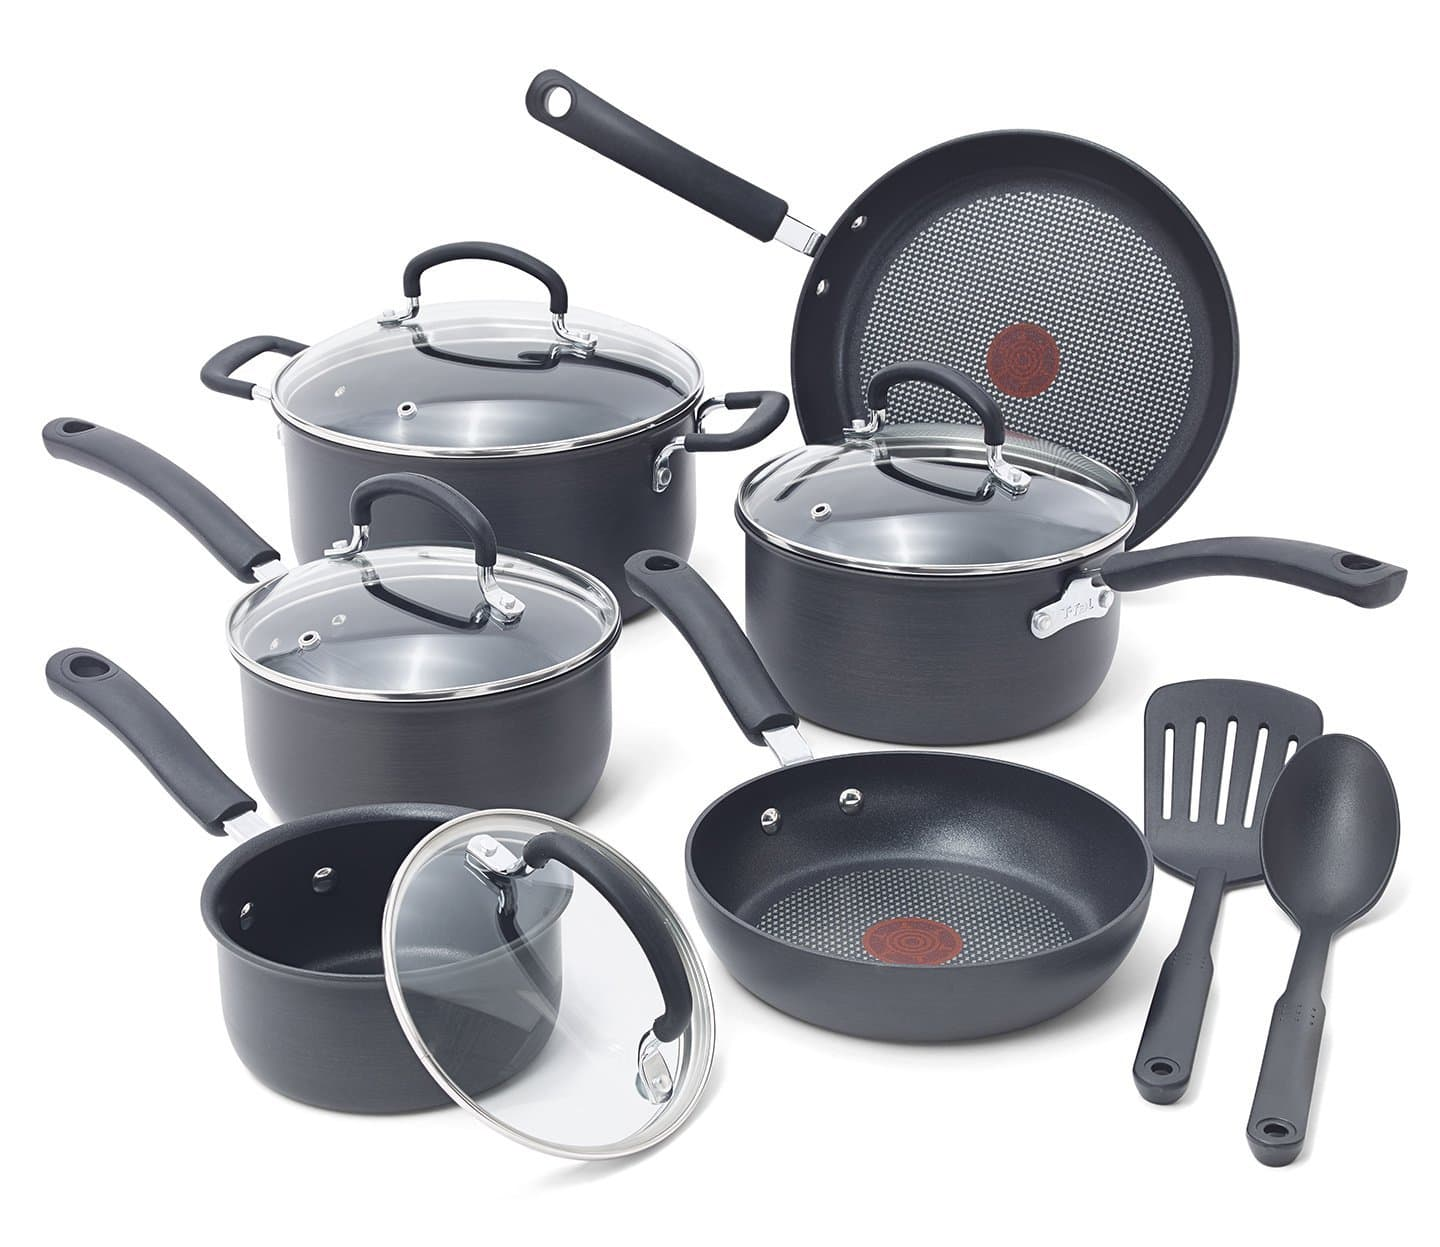 12-Piece T-Fal Ultimate Hard Anodized Nonstick Cookware Set $59.49 + Free Shipping